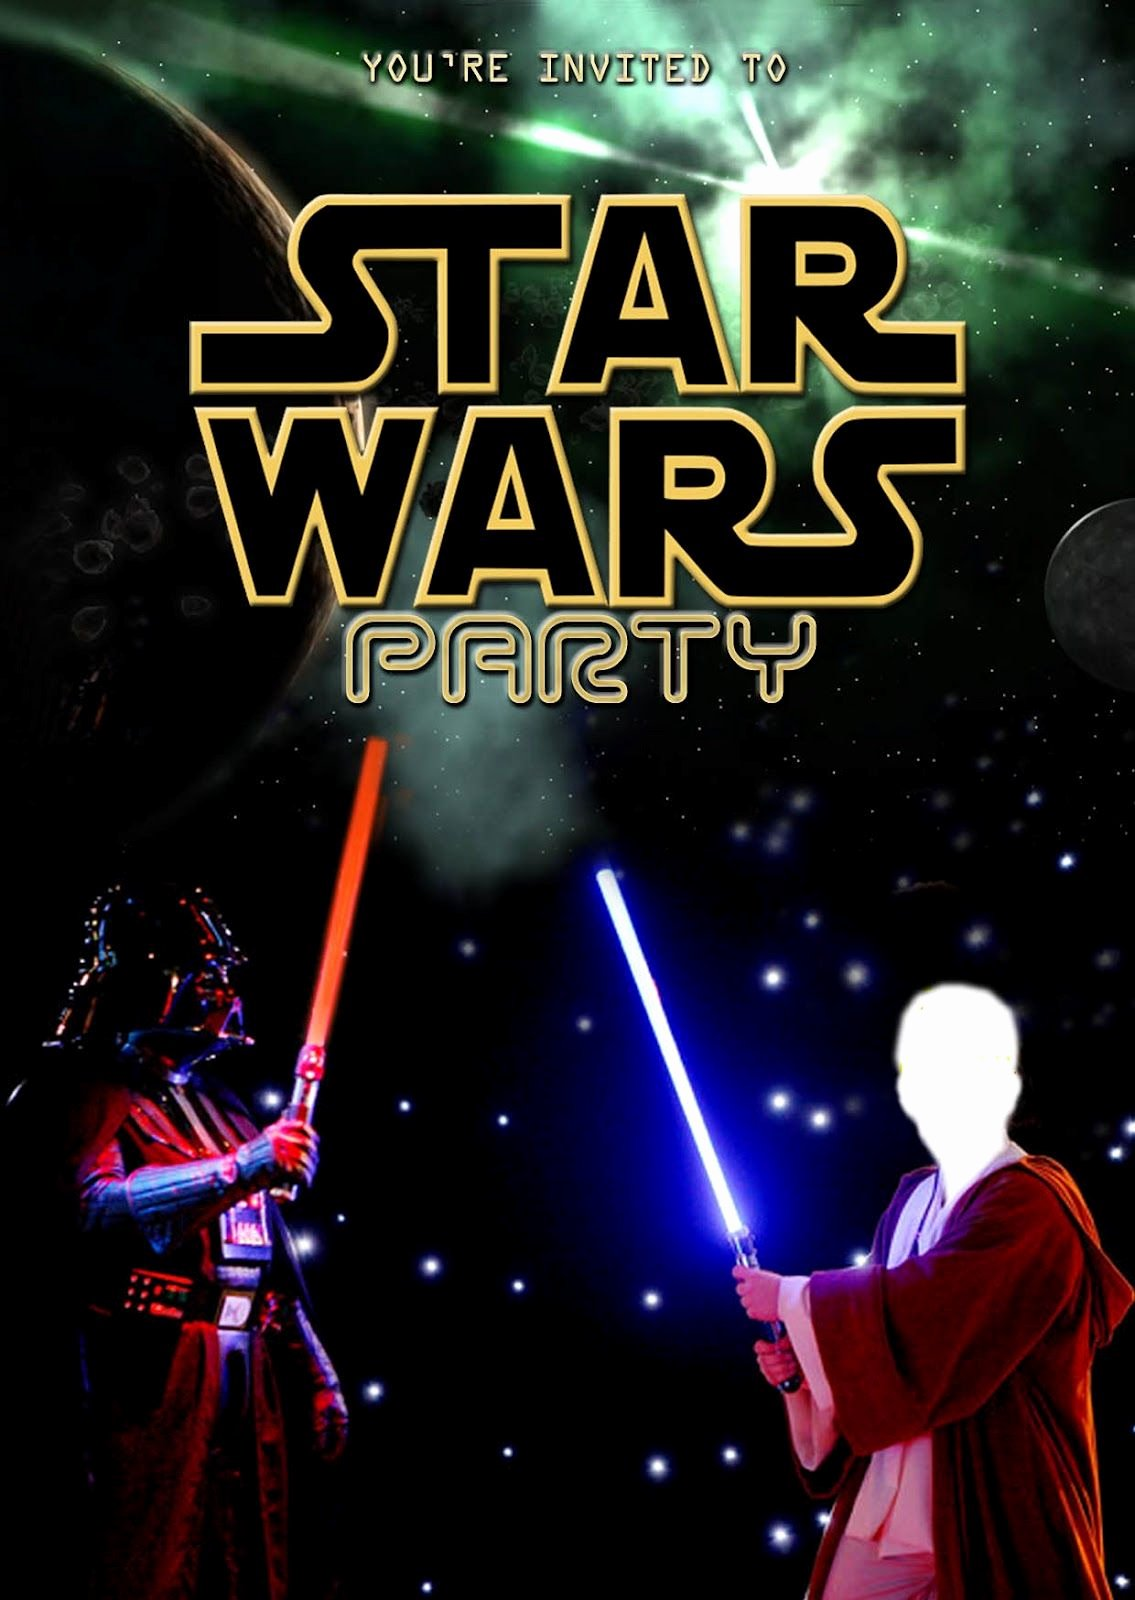 Star Wars Birthday Party Invitations Best Of Free Kids Party Invitations Star Wars Party Invitation New Boy Birthday Parties